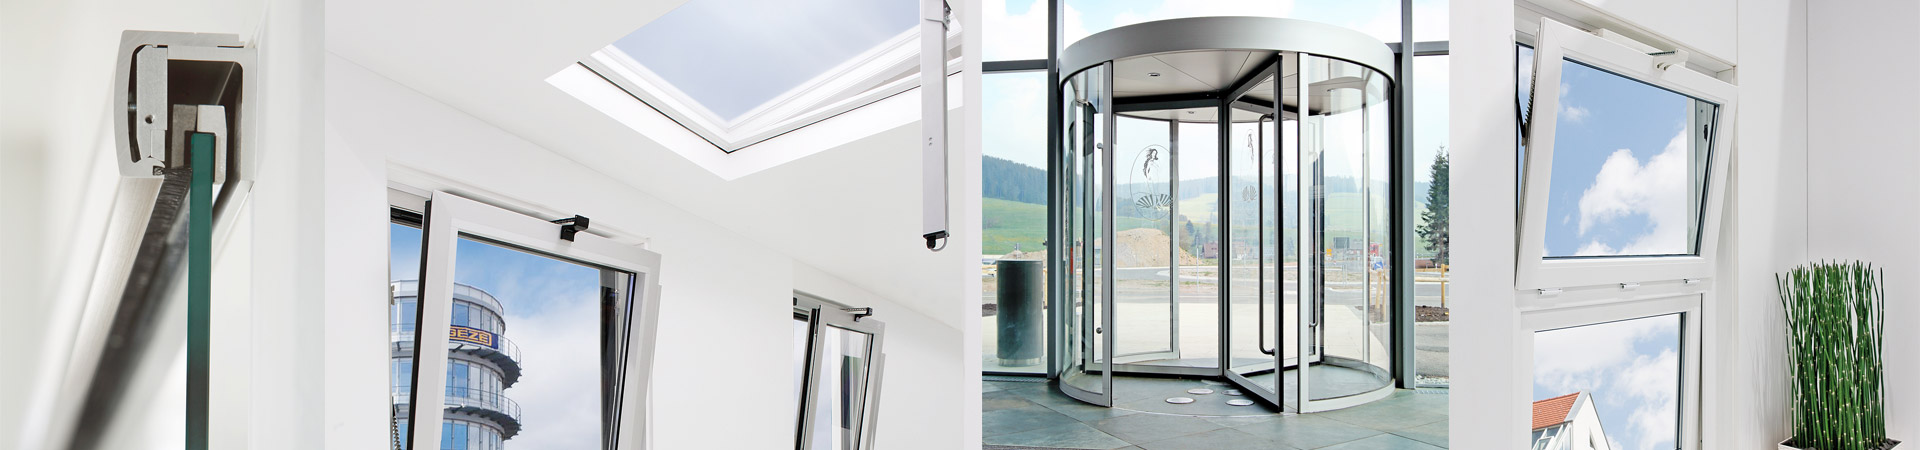 & Geze SA Product Page | Door Window u0026 Safety Technology | Specifile